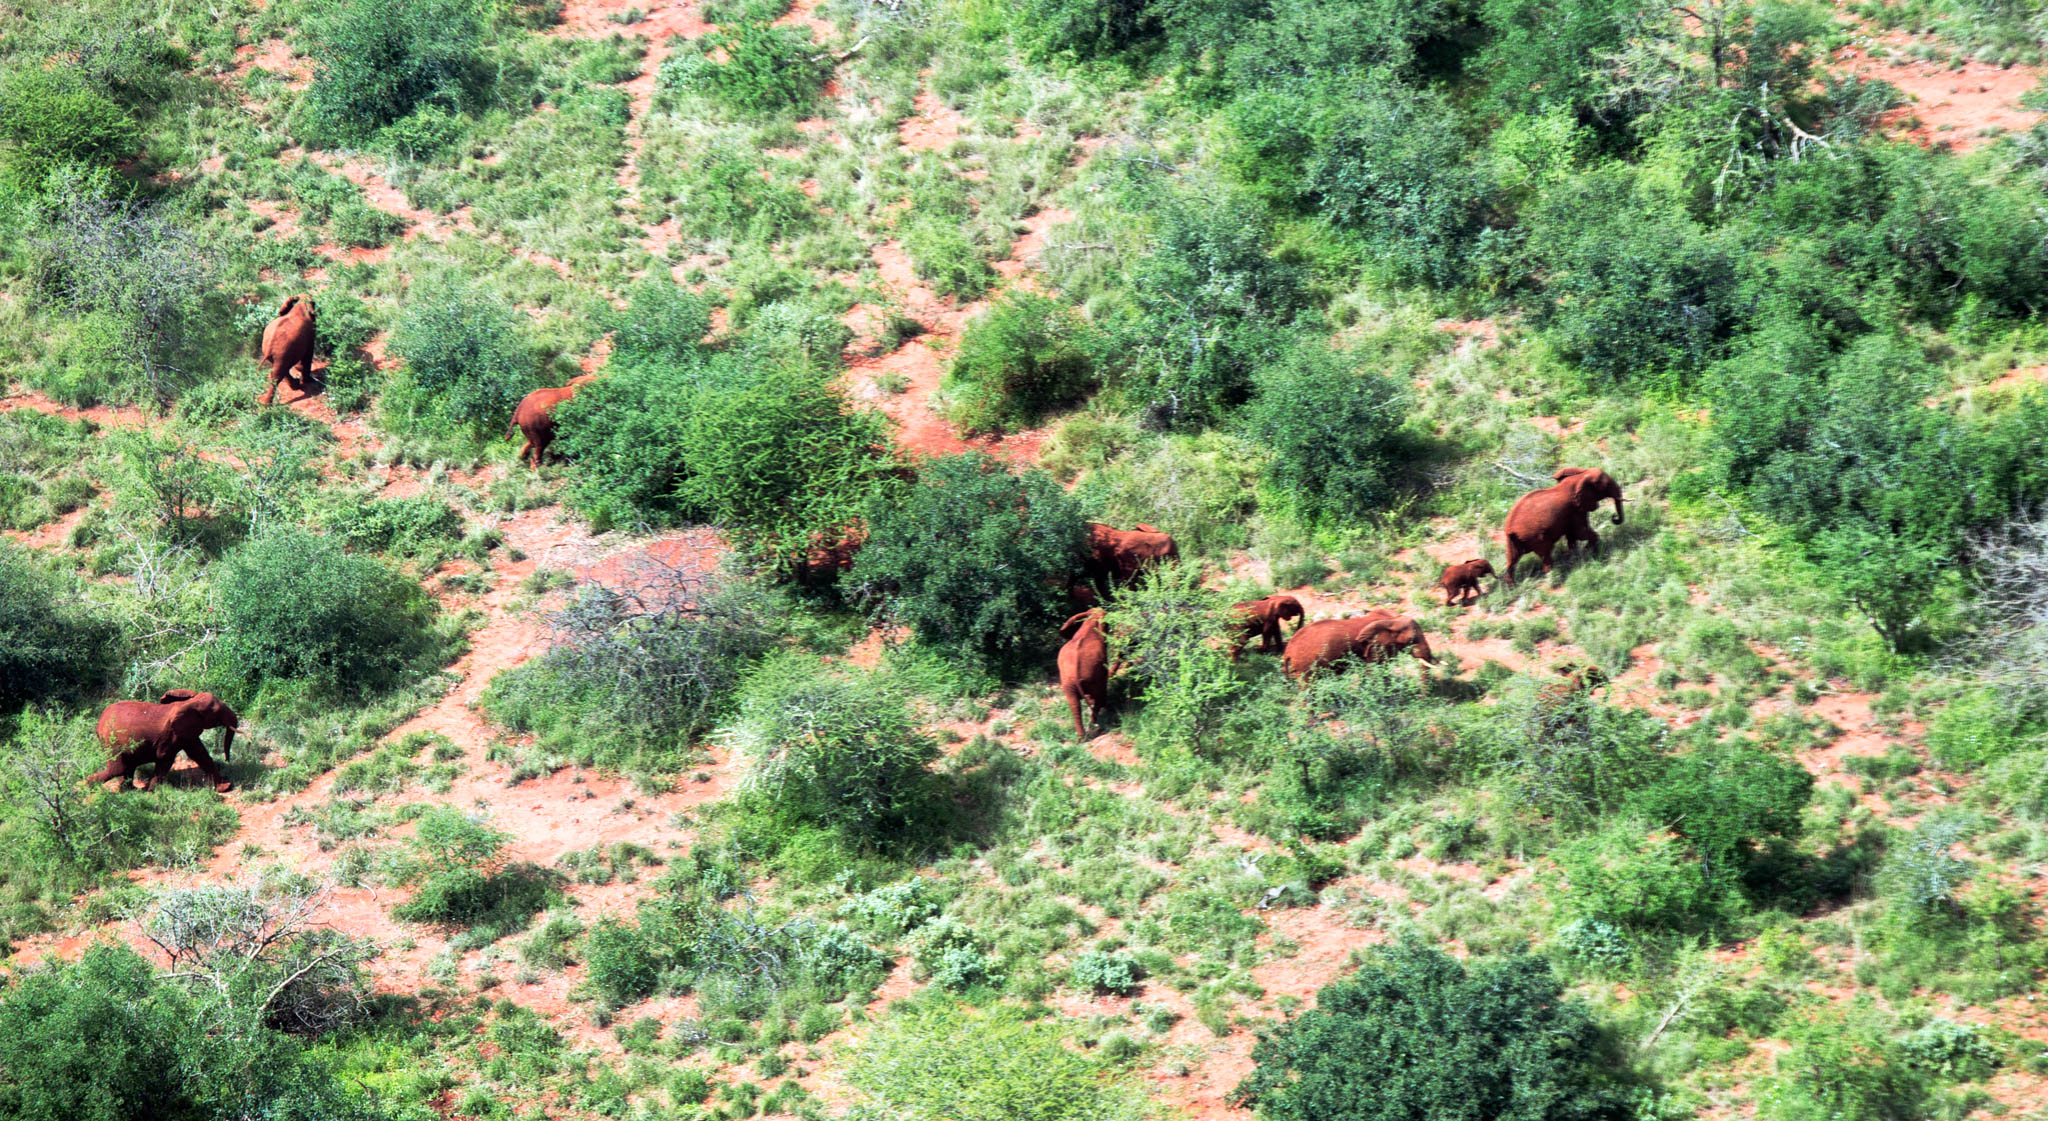 Many elephants moving past trees, seen from above (© AOPA)